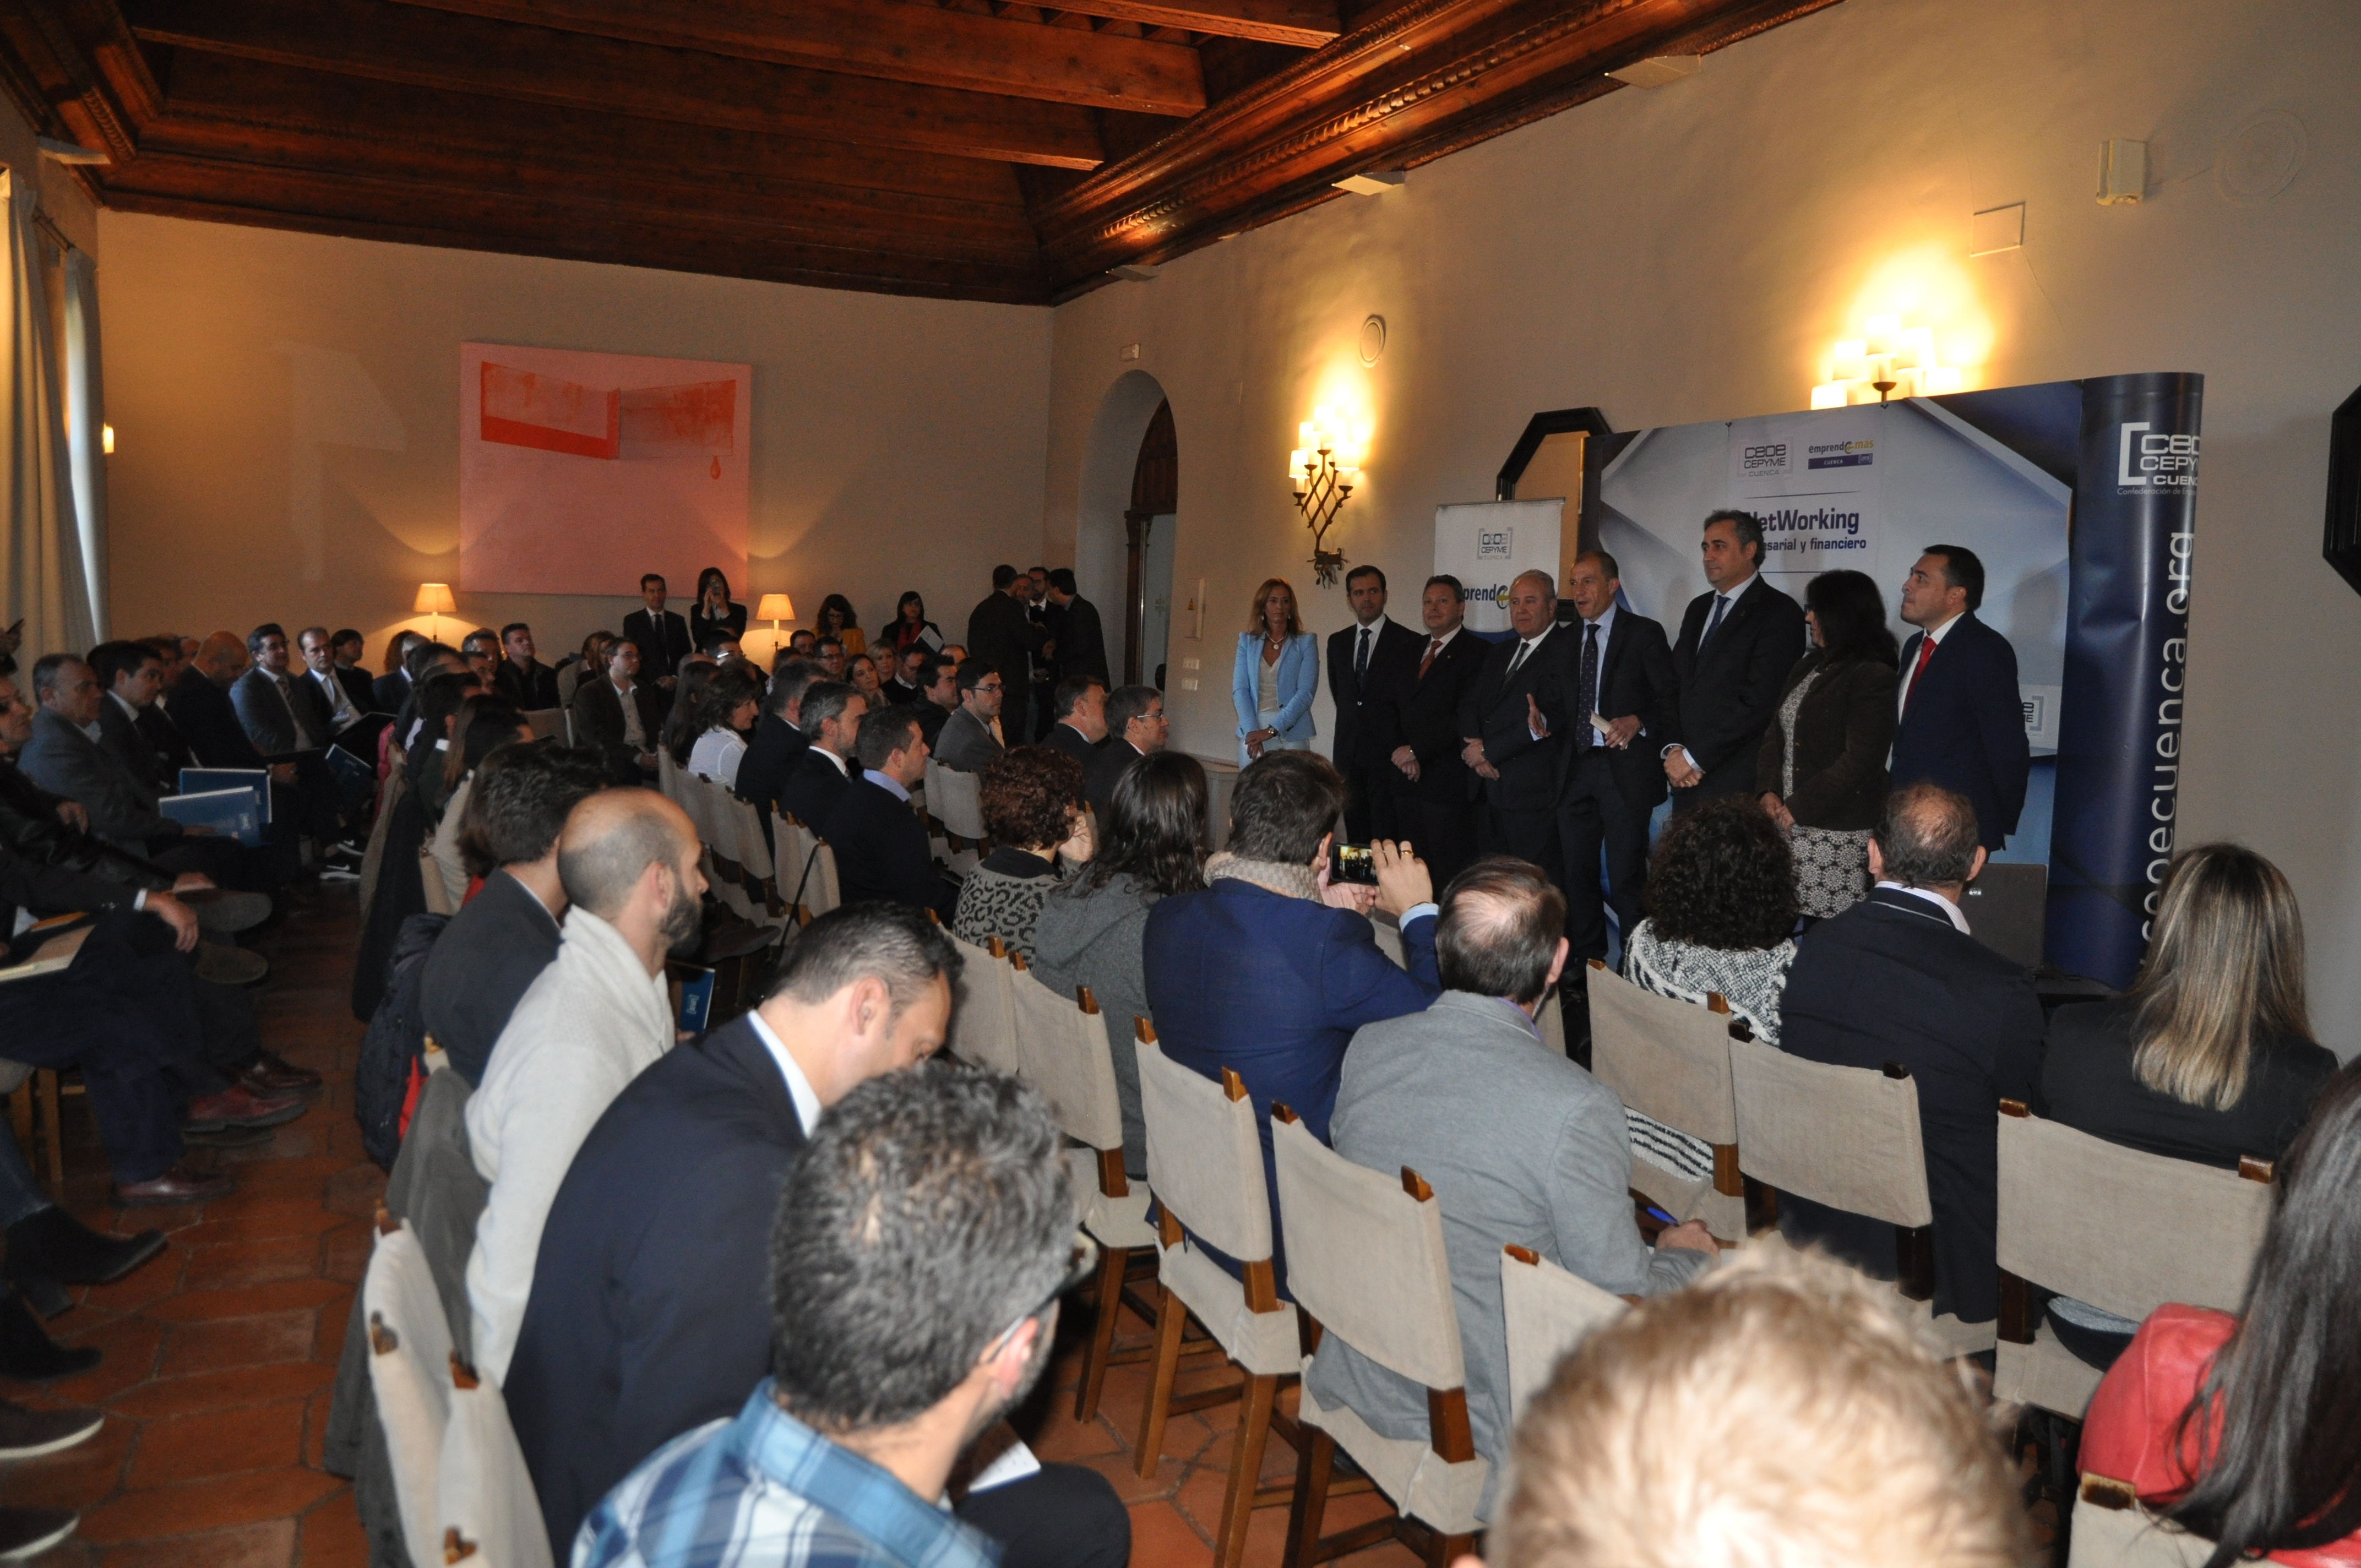 https://blog.globalcaja.es/wp-content/uploads/2015/11/Emprende-Cuenca-Networking.jpg